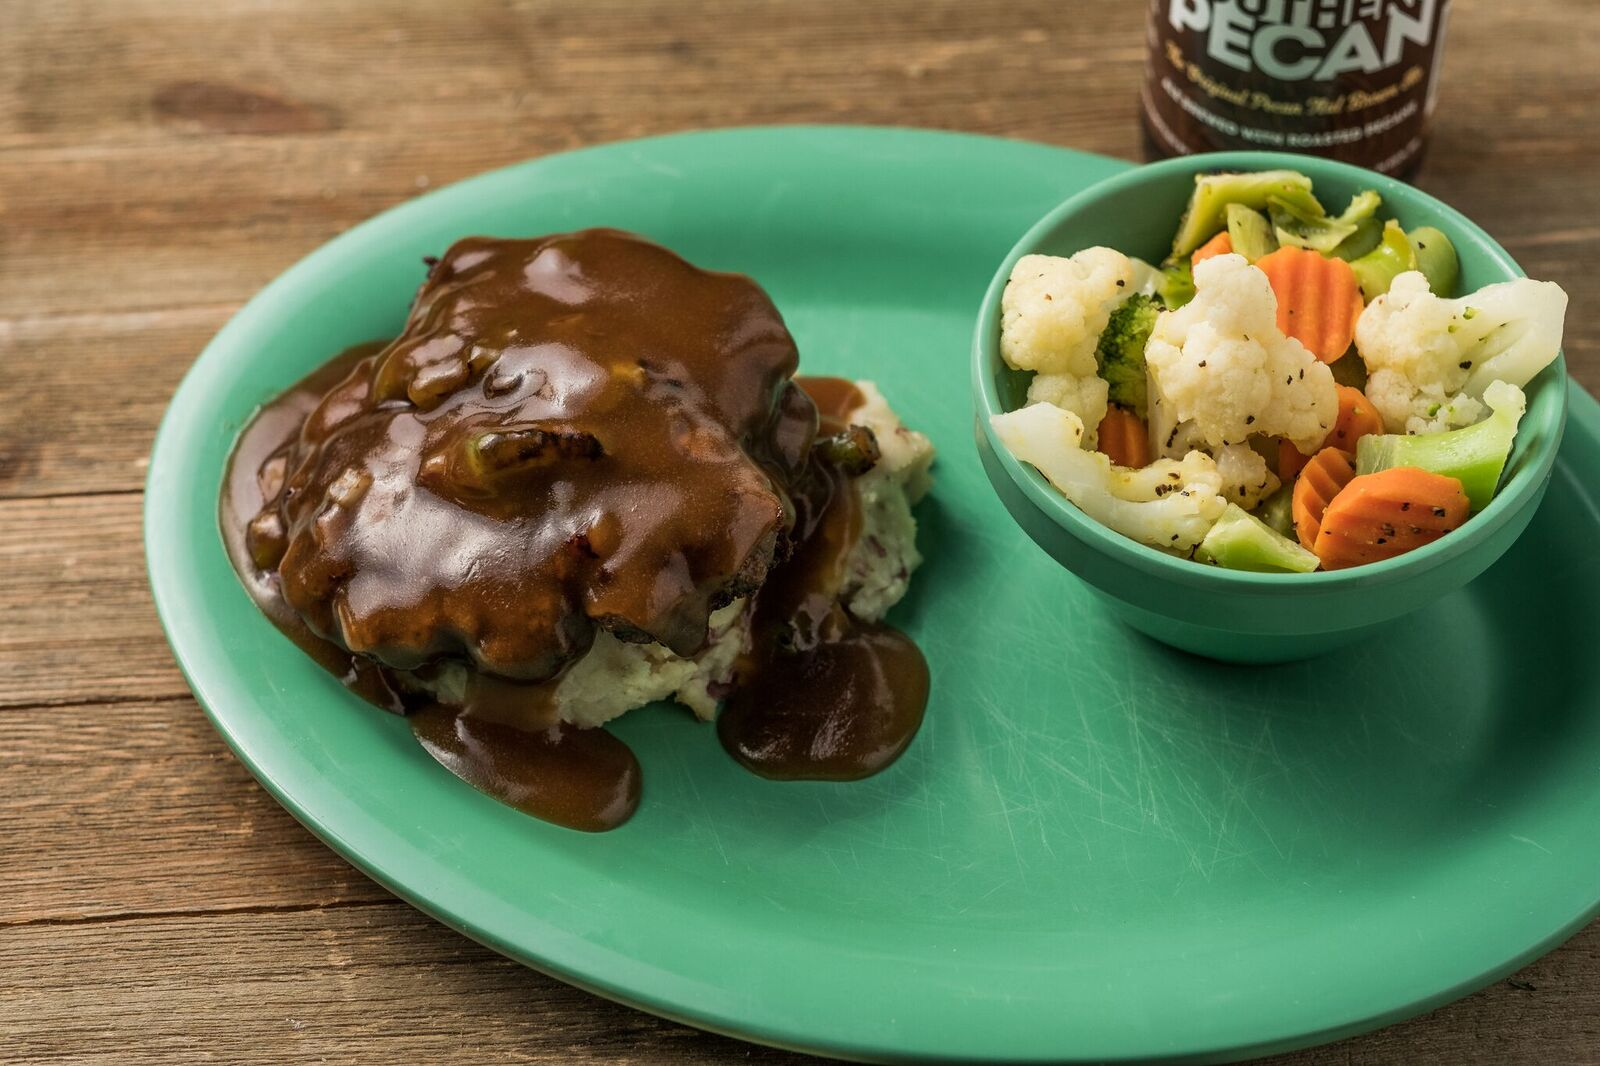 Mashed potatoes topped with brown gravy with a bowl of vegetables